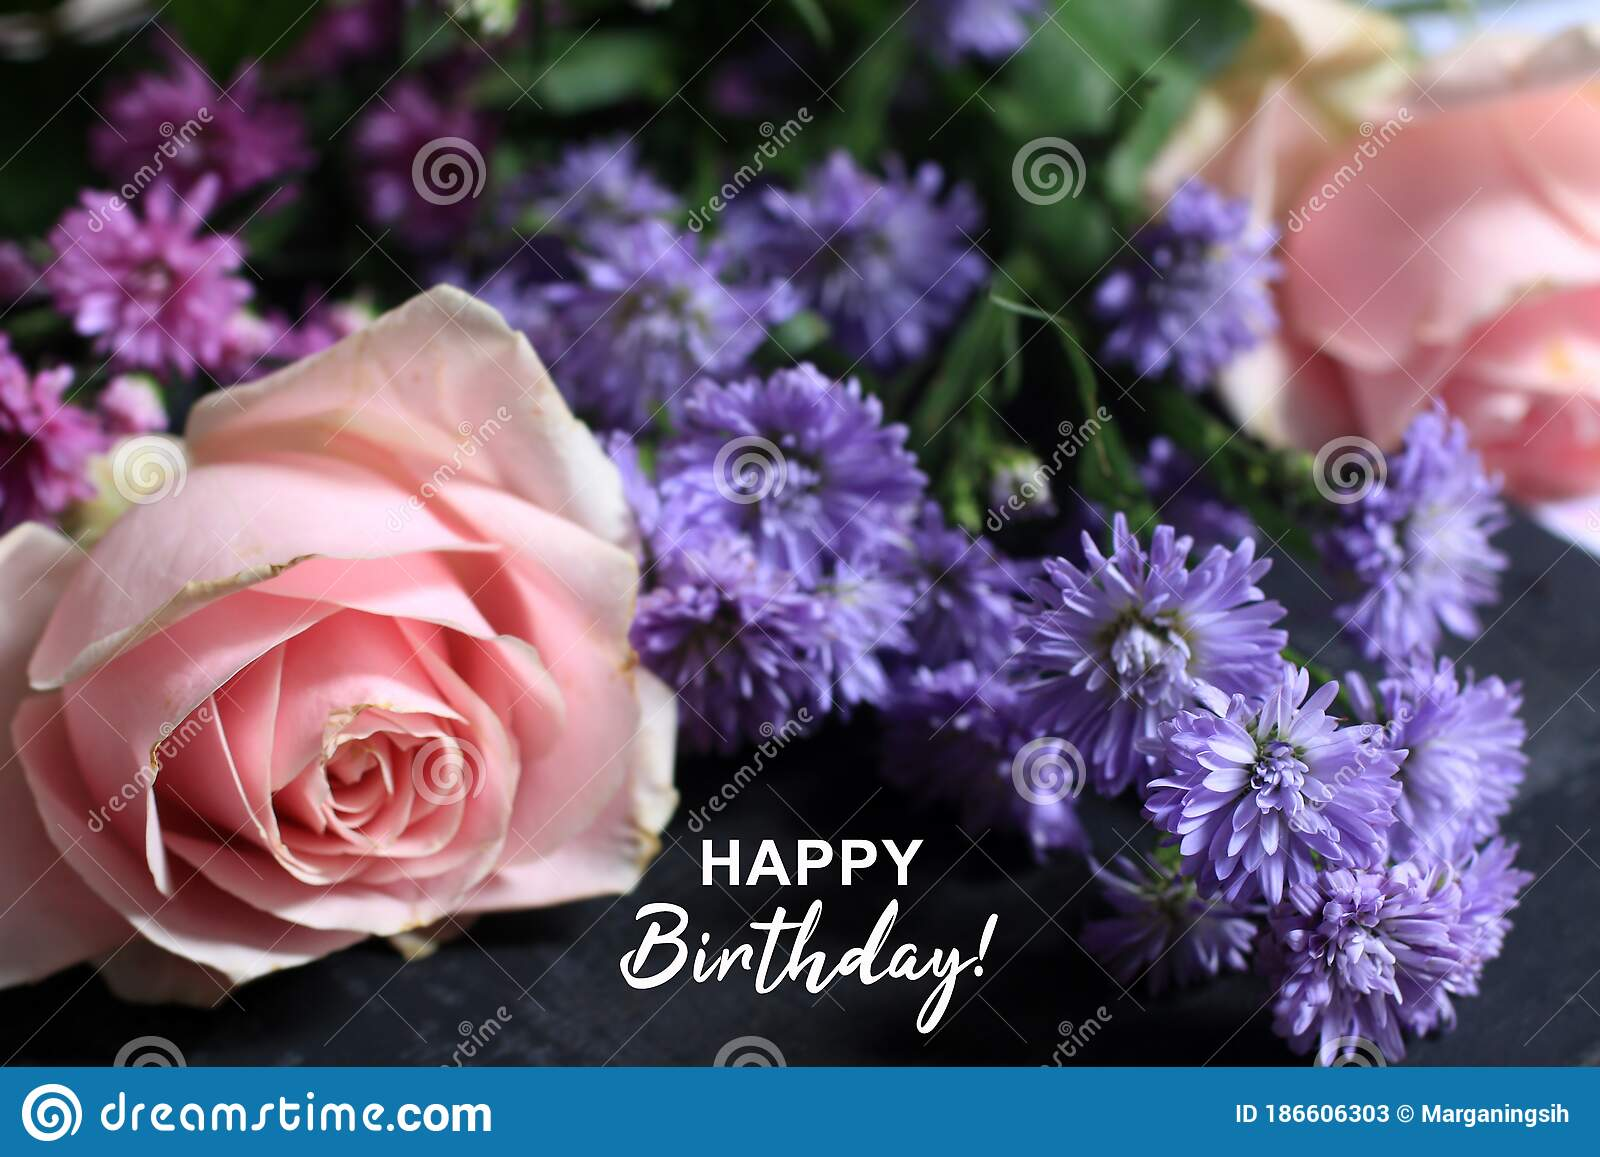 2 634 Rose Bouquet Text Happy Birthday Photos Free Royalty Free Stock Photos From Dreamstime